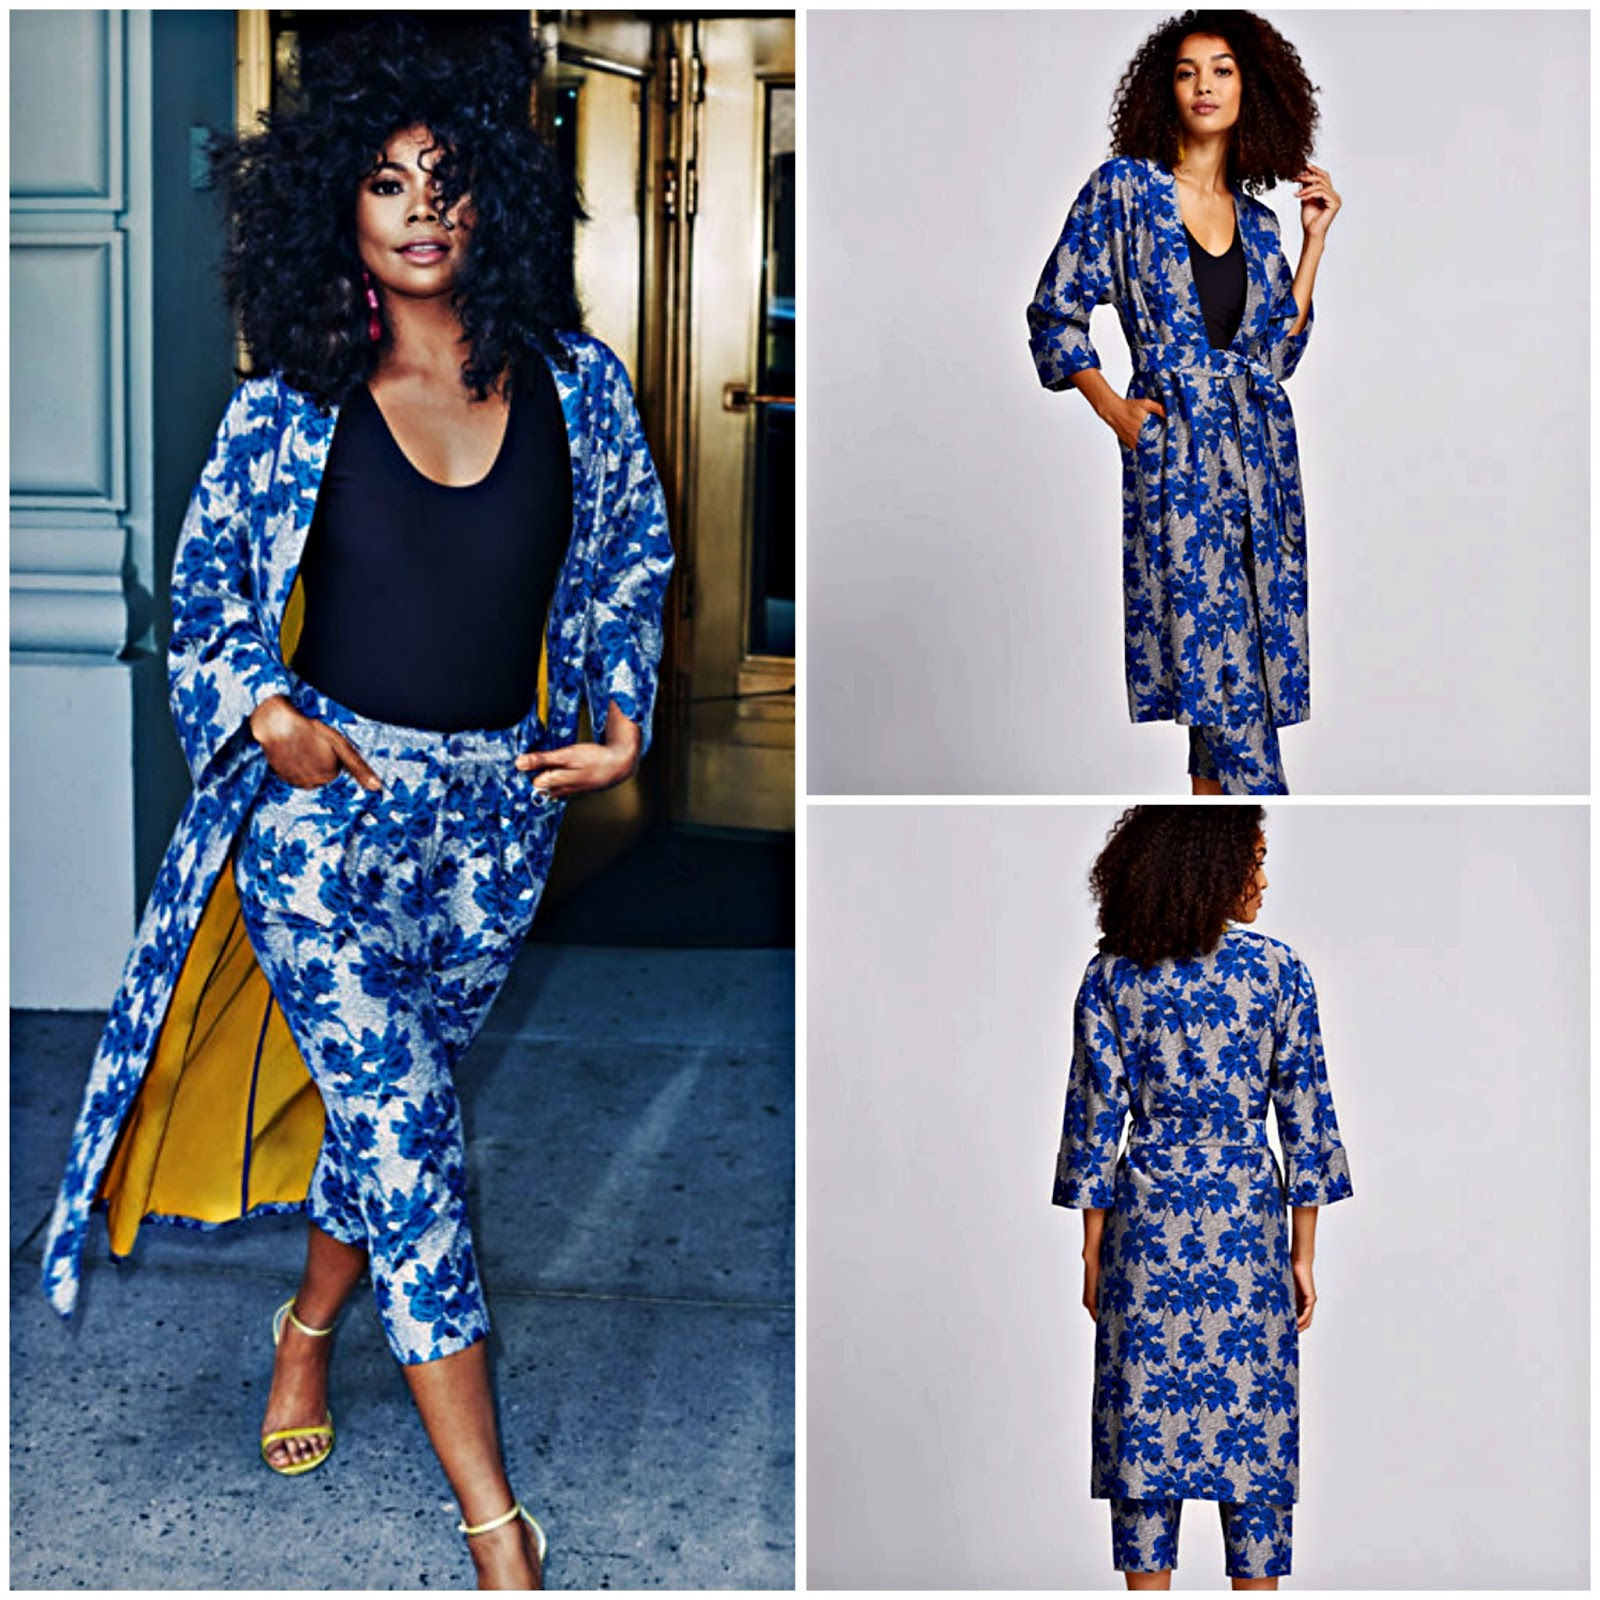 Click here to buy her LONG FLORAL KIMONO which is on sale!